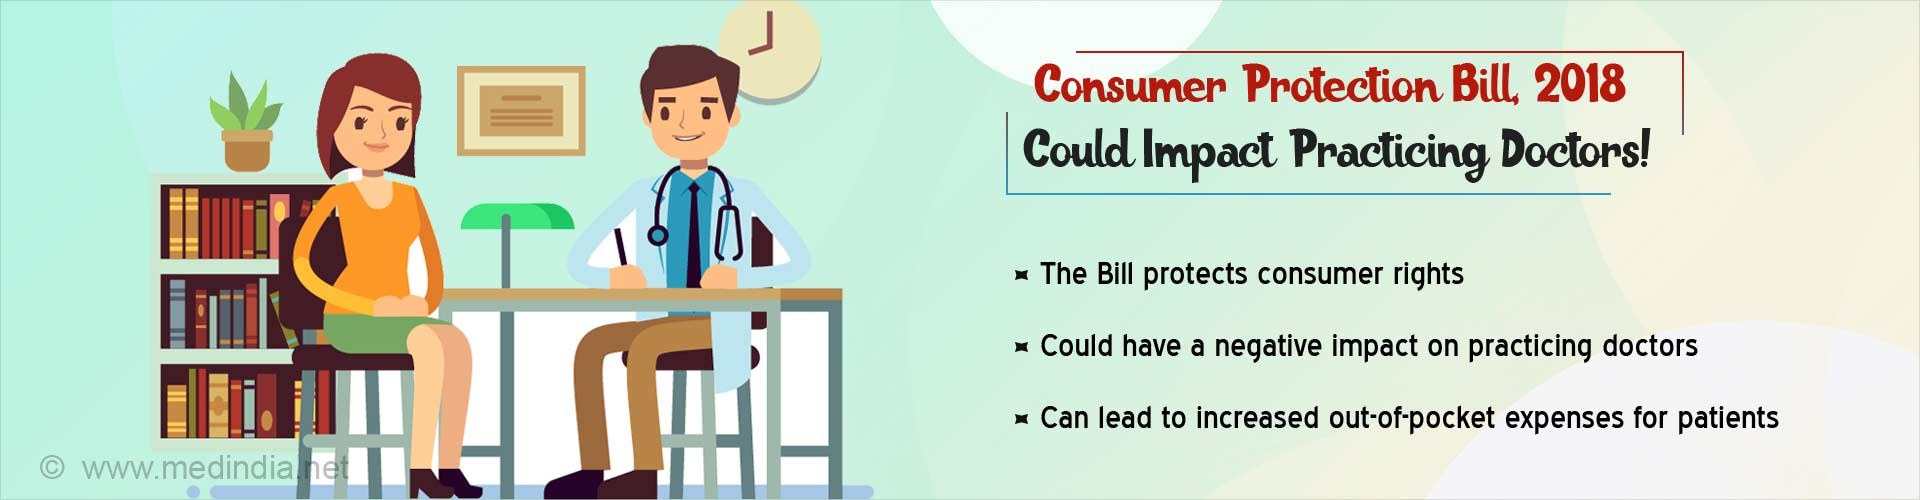 Consumer Protection Bill 2018: What Does It Mean for Doctors?